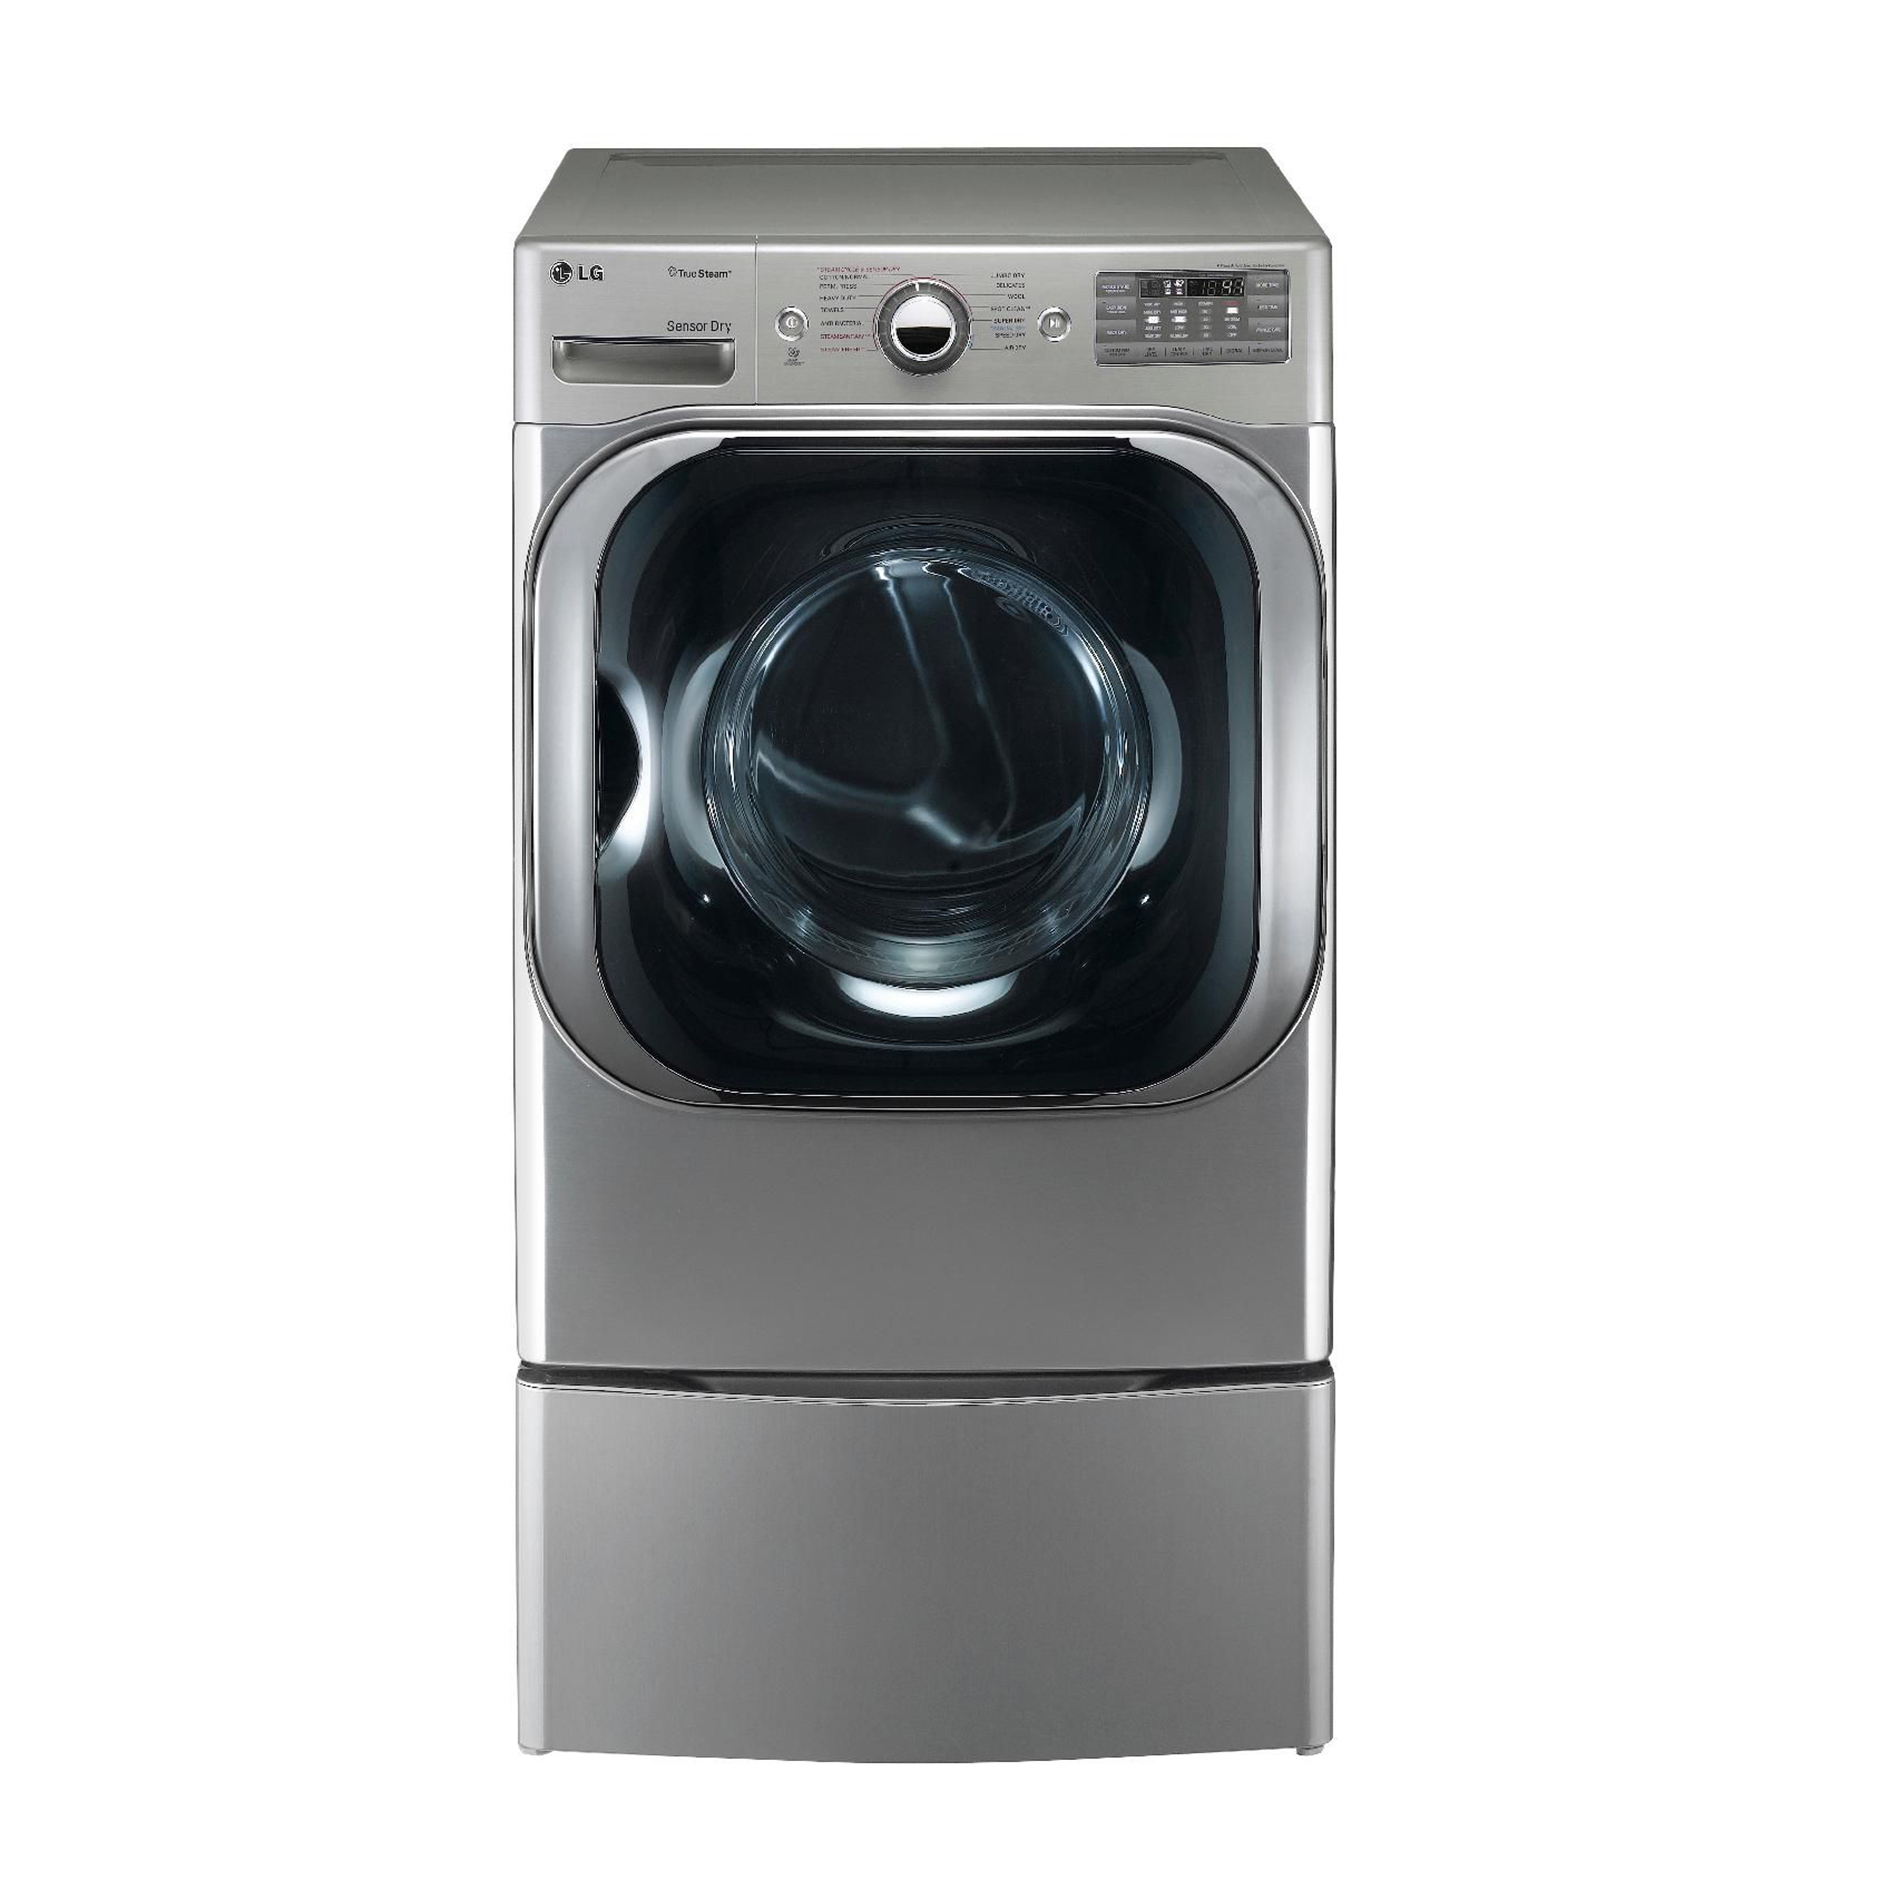 LG DLGX8001V 9.0 cu. ft. Mega-Capacity Steam Gas Dryer w/ Sensor Dry - Graphite Steel